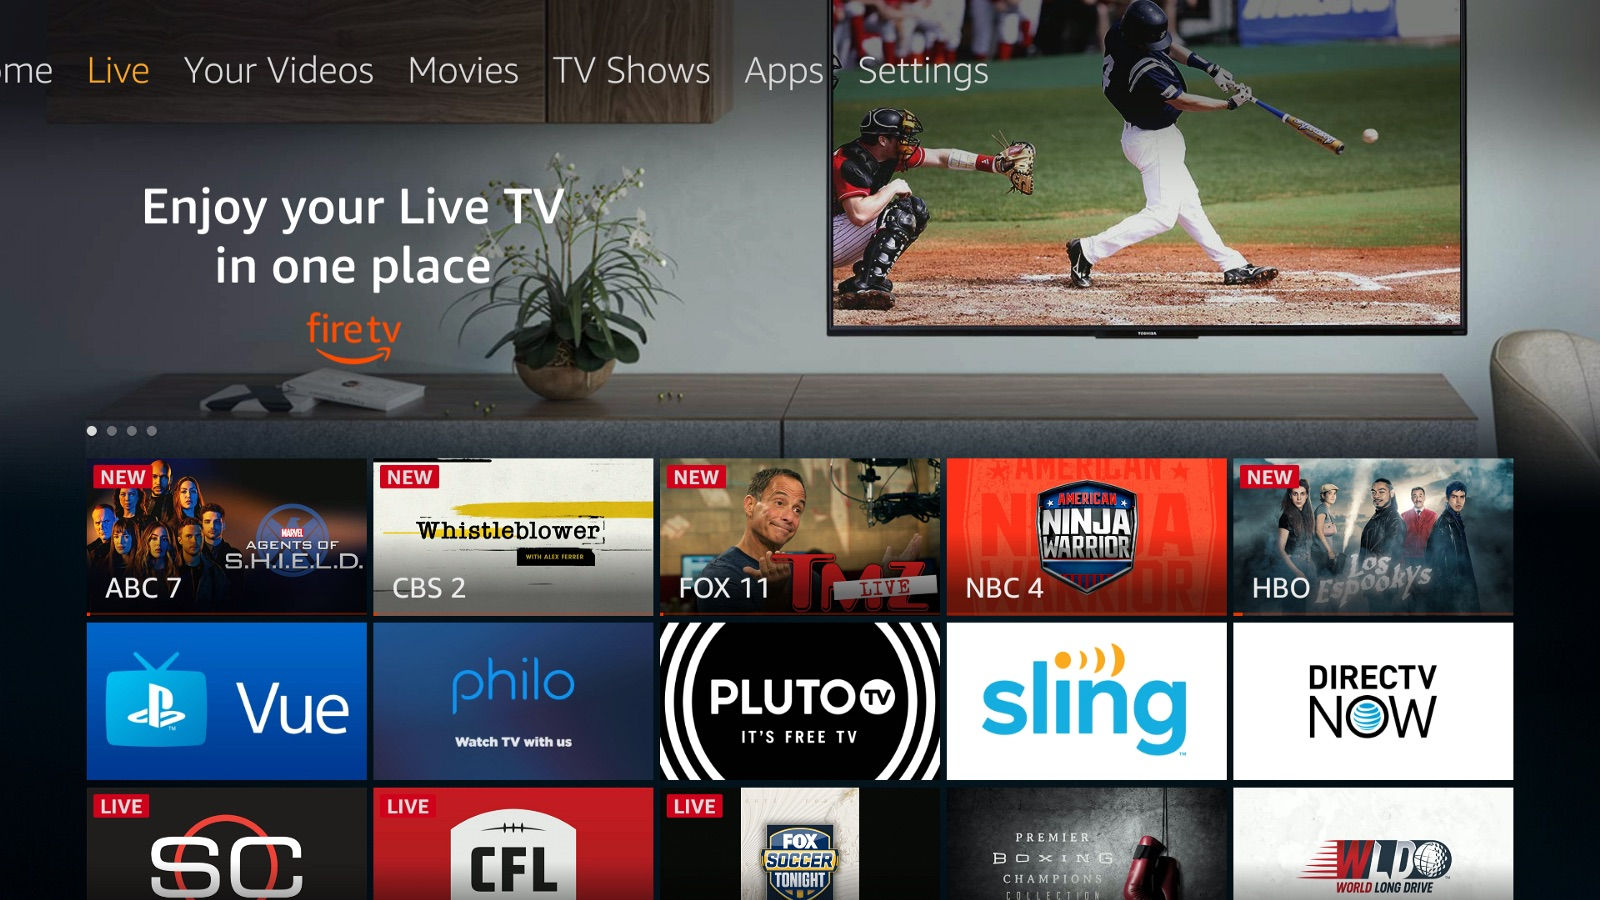 amazon fire tv brings live tab for easier access to live